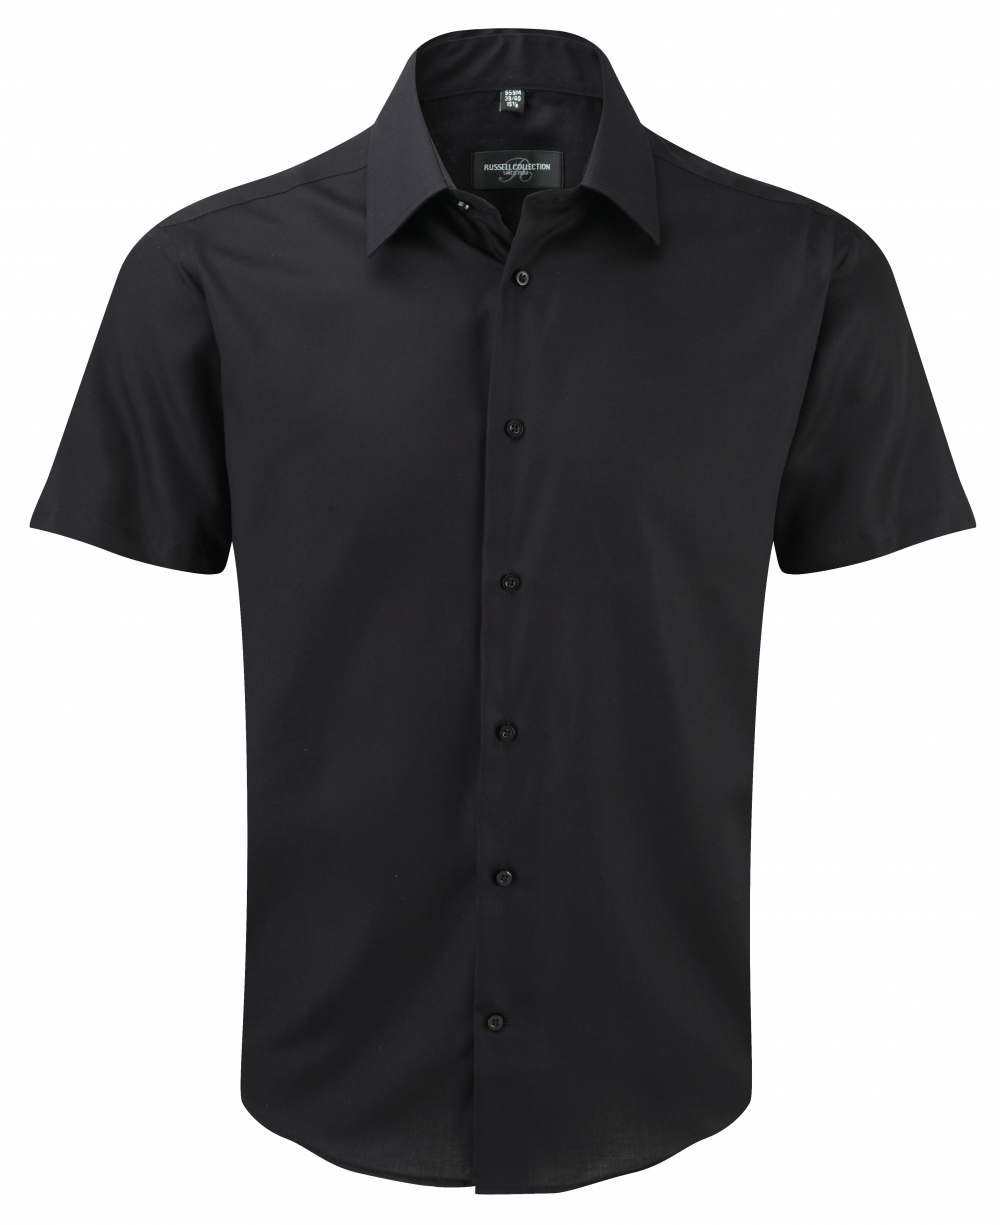 The Van Heusen Short Sleeve Non-Iron % Cotton Aviator Shirt has shoulder straps, two true flap pockets, pencil slot, color matched buttons. Short sleeves are finished with a beveled hem.